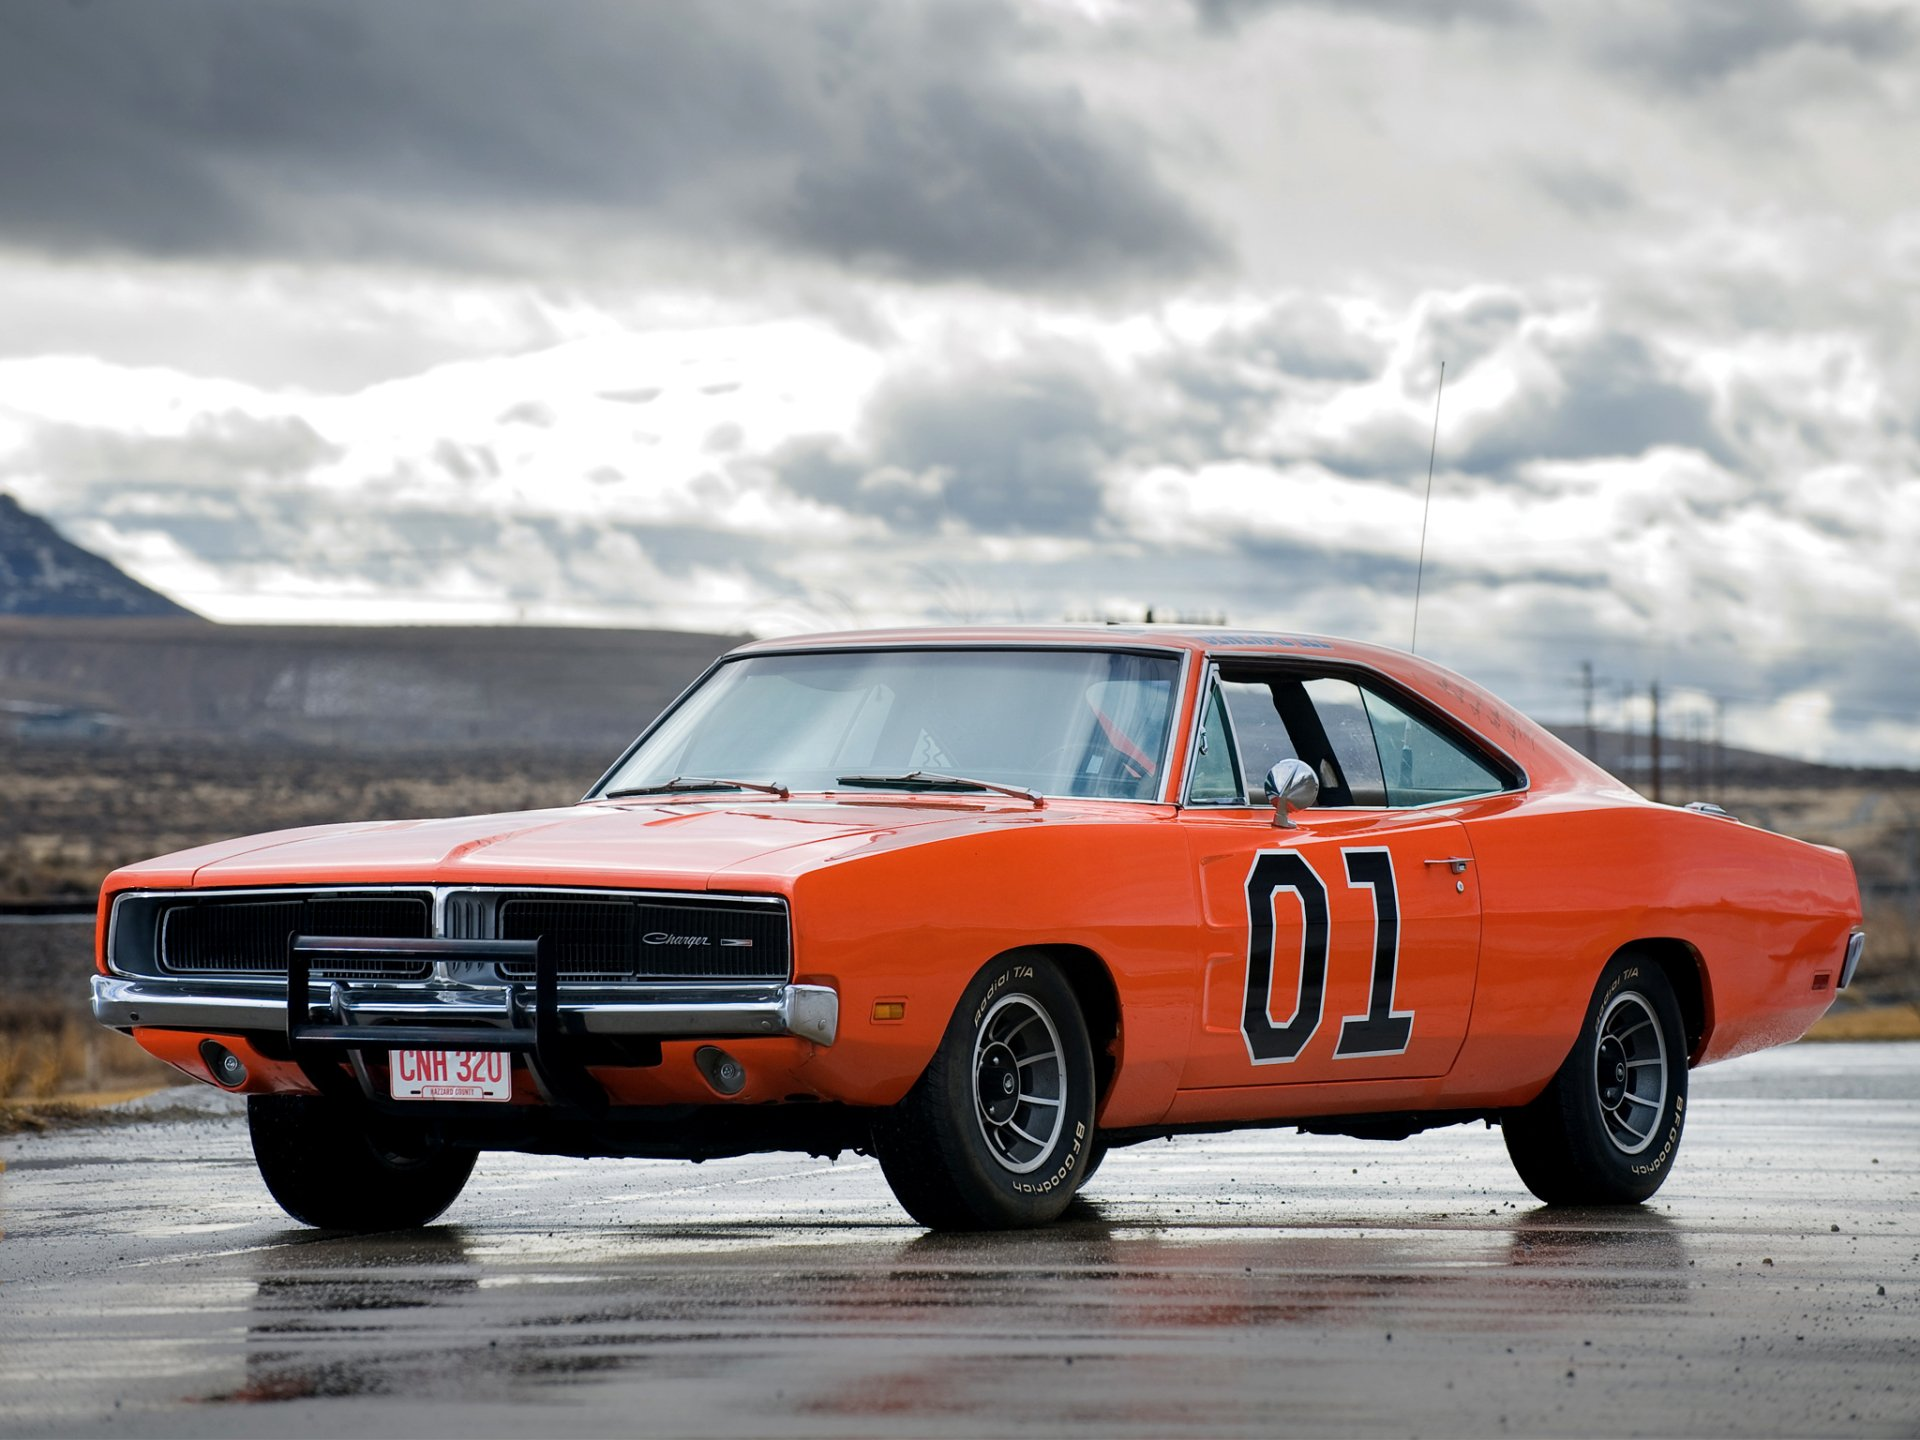 4 General Lee (The Dukes of Hazzard) HD Wallpapers | Background Images -  Wallpaper Abyss